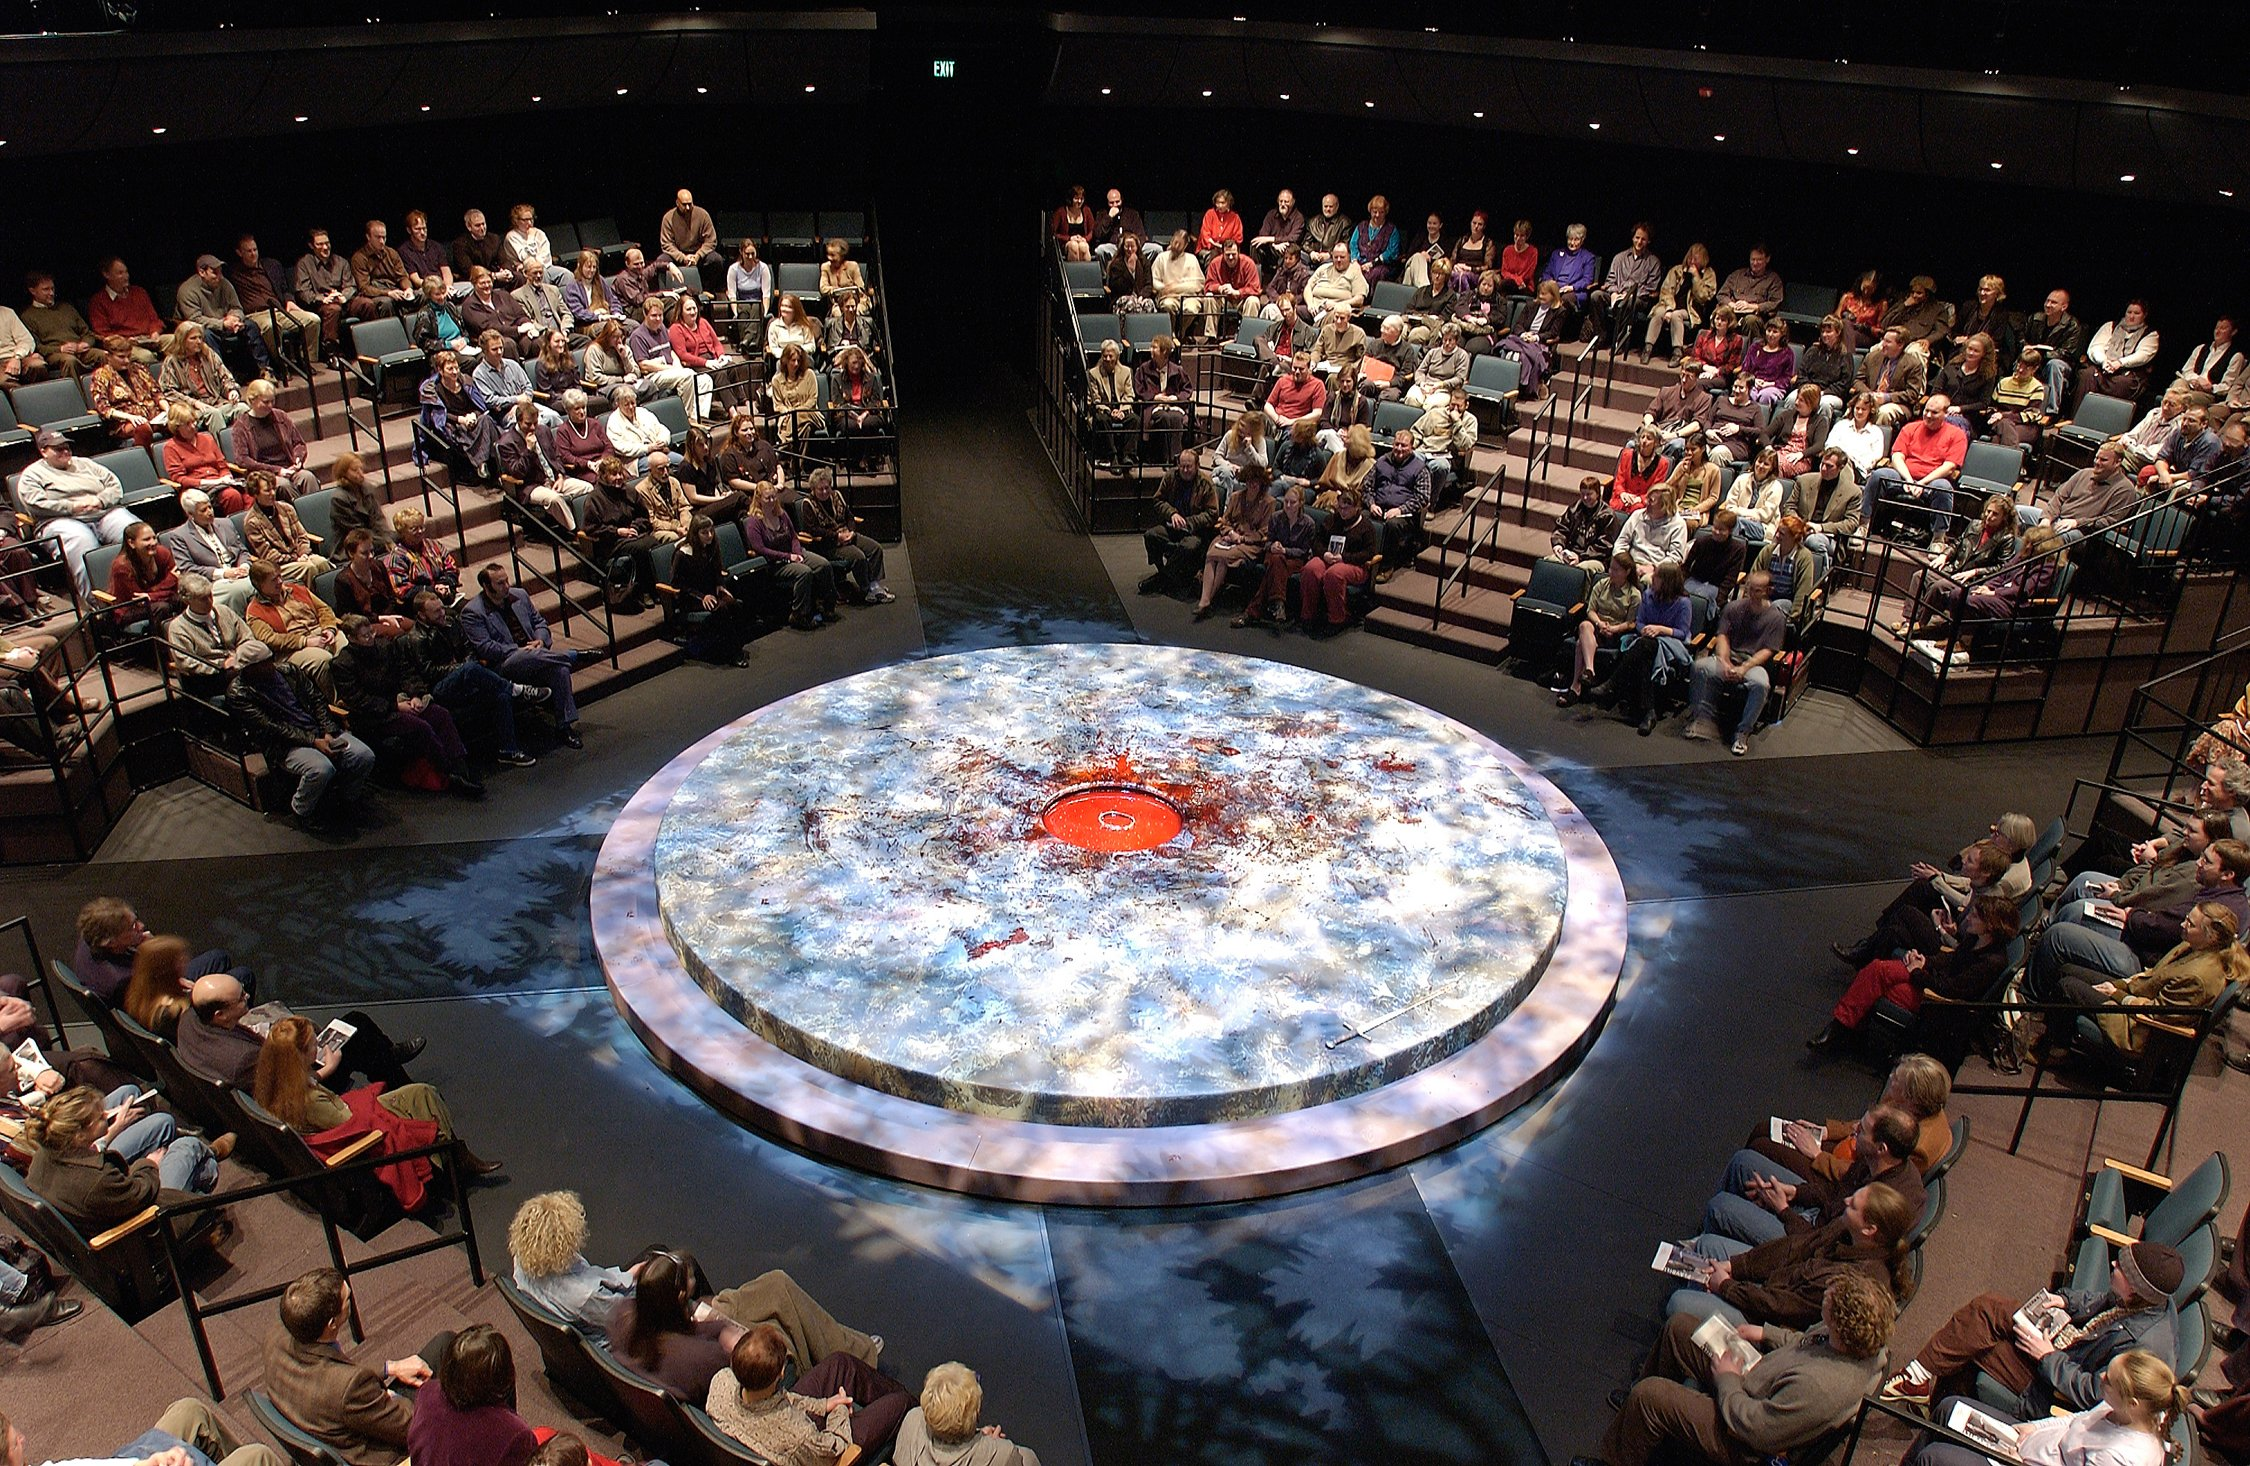 Oregon Shakespeare Festival, Ashland: See 1, reviews, articles, and photos of Oregon Shakespeare Festival, ranked No.2 on TripAdvisor among 29 attractions in Ashland/5(K).